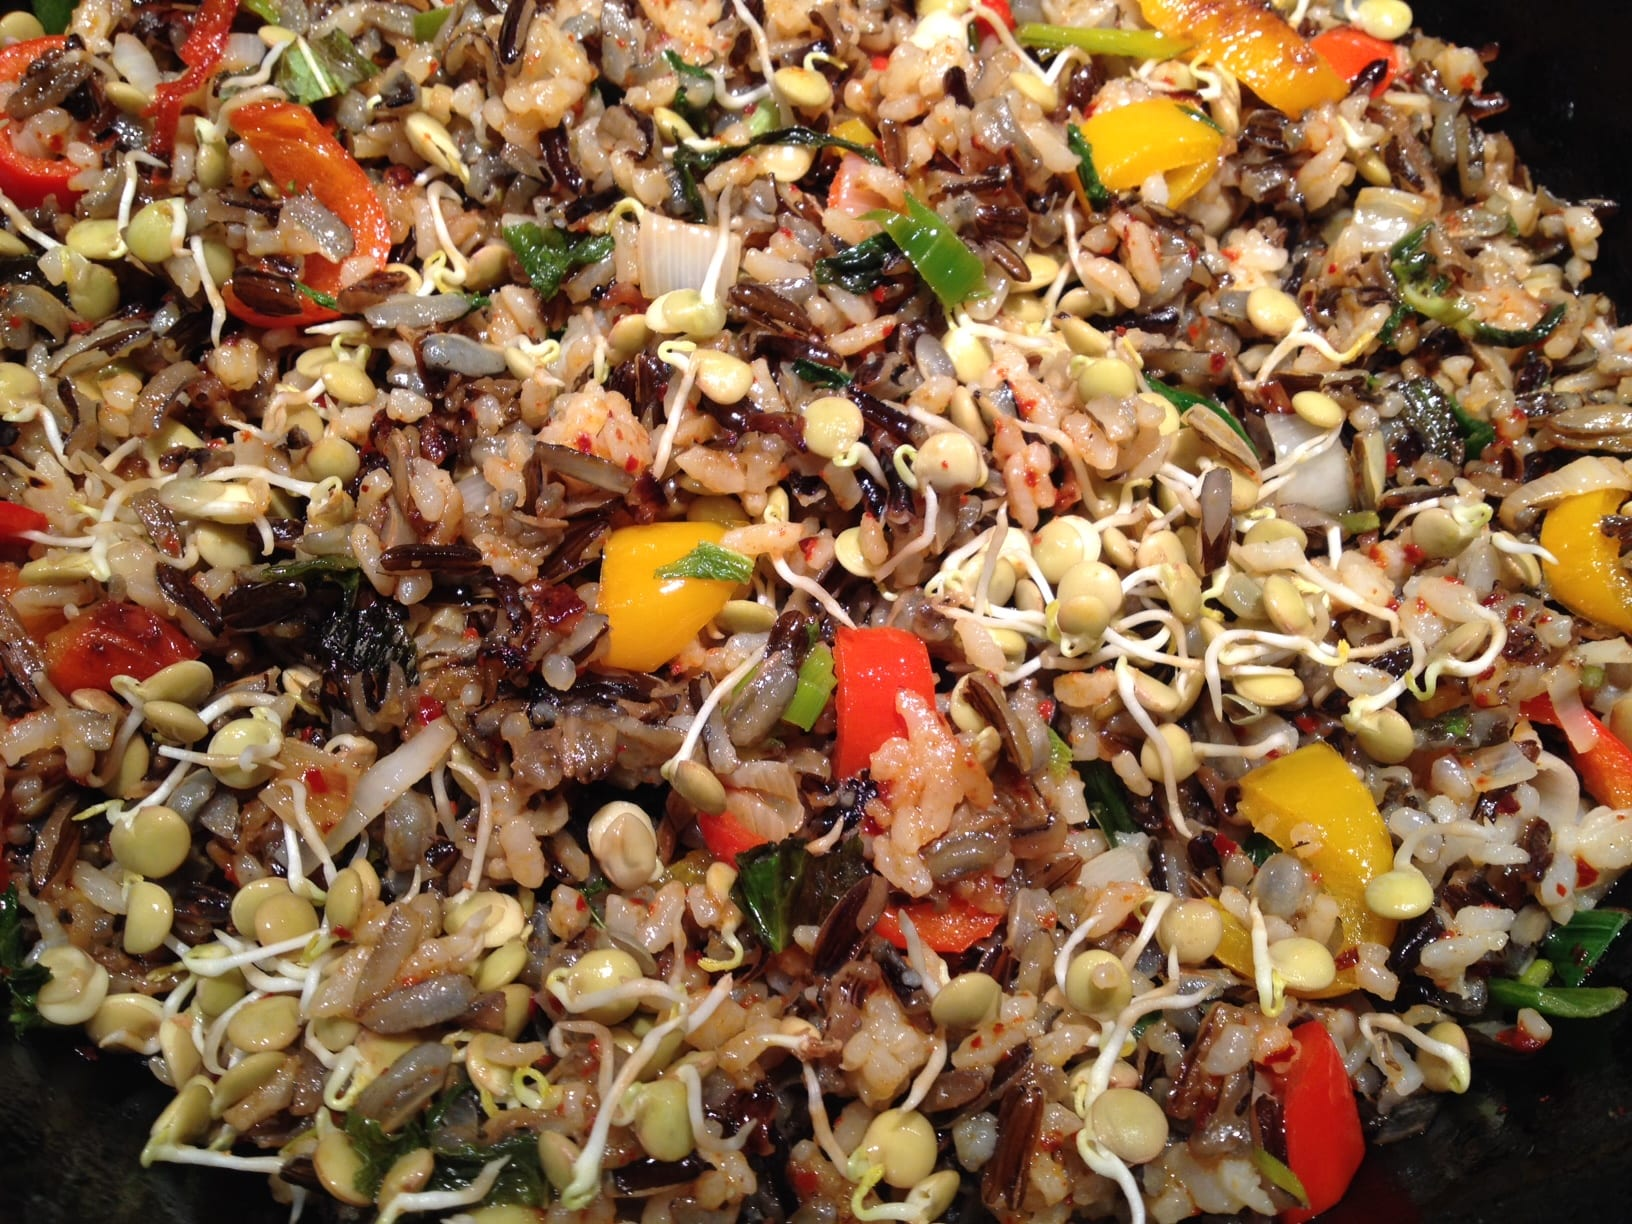 Fried Wild Rice with Mint and Lentil Sprouts